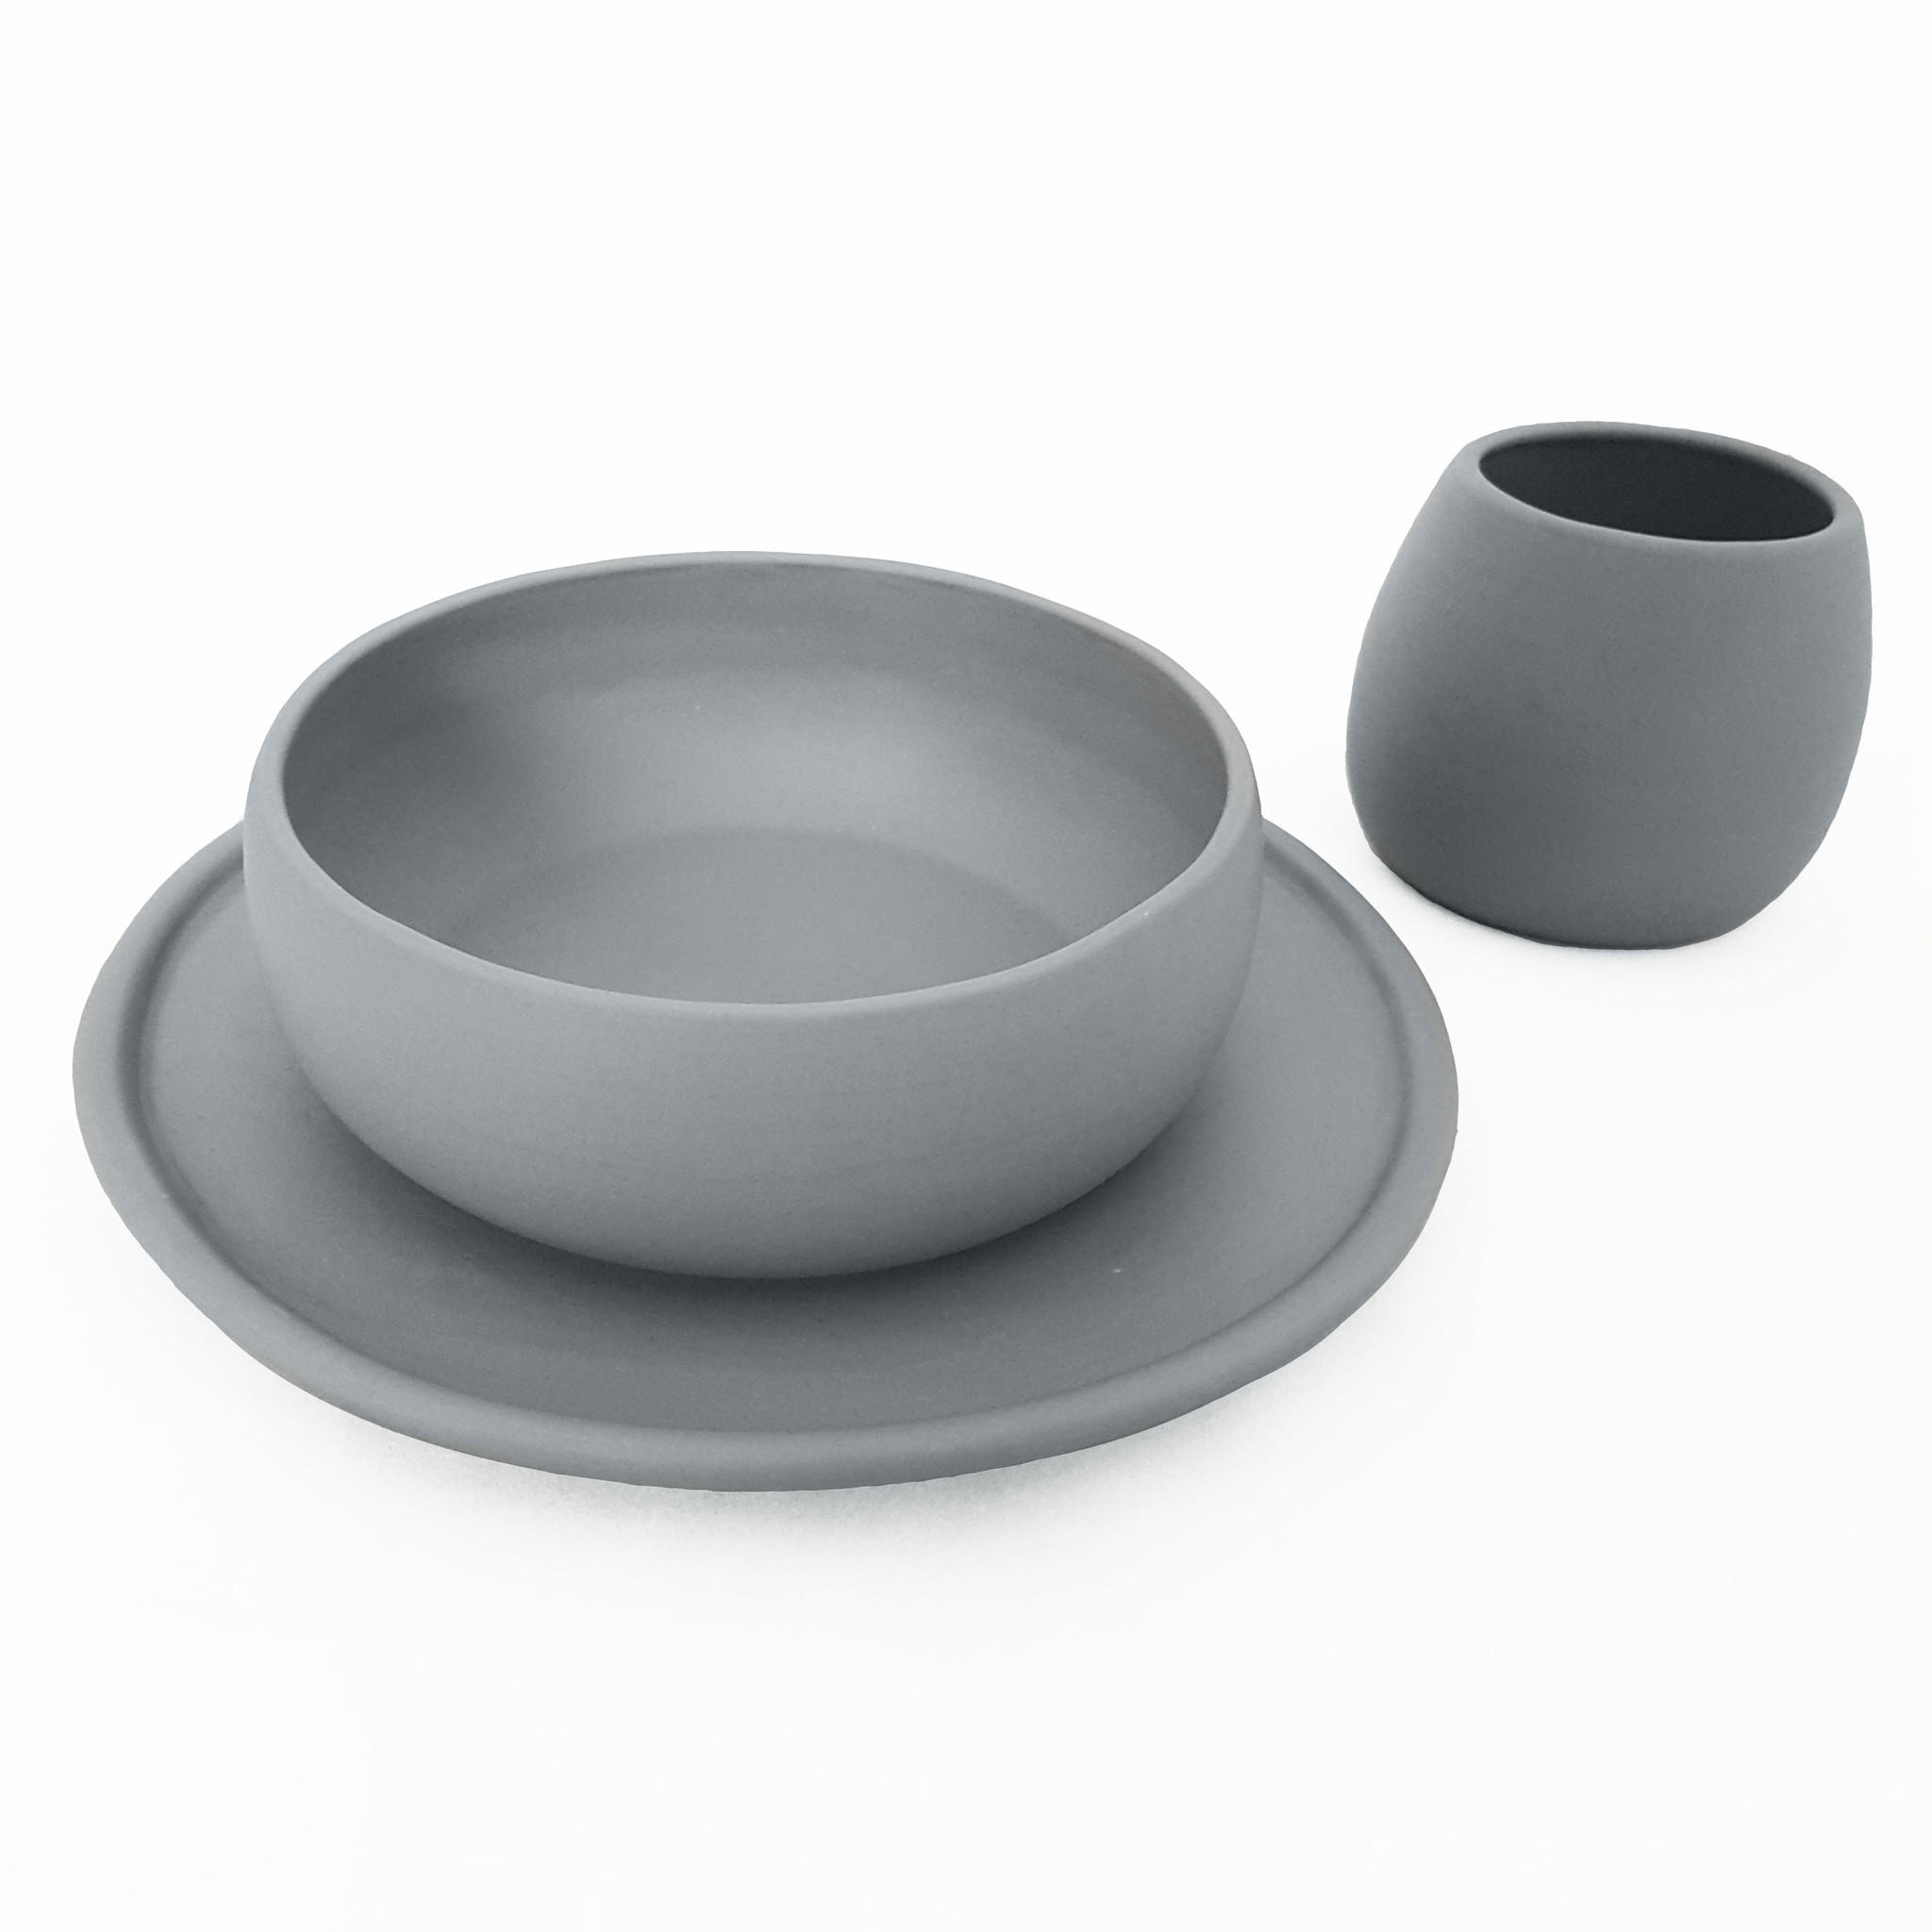 matte grey porcelain usa made dinnerware from hammers heels